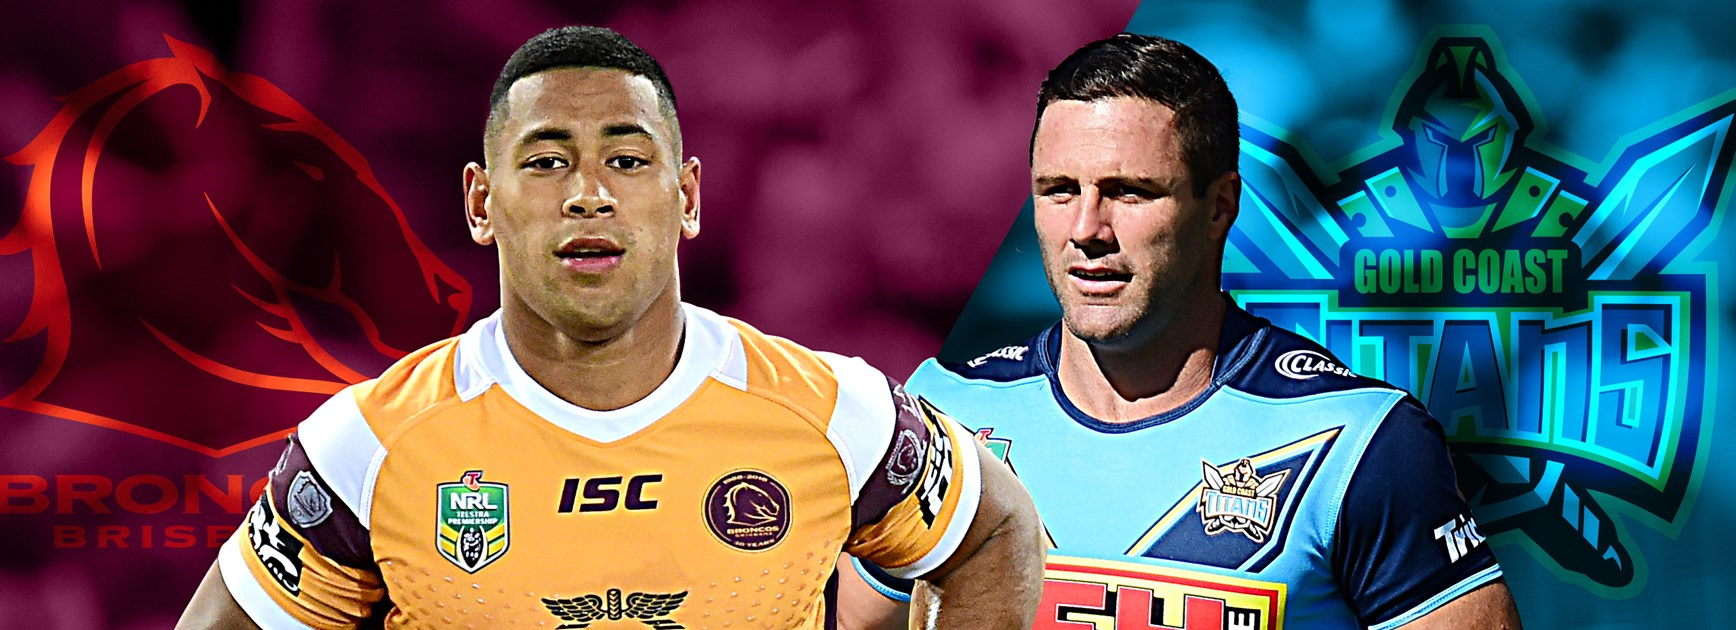 Broncos v Titans: Sims to start, Cartwright benched